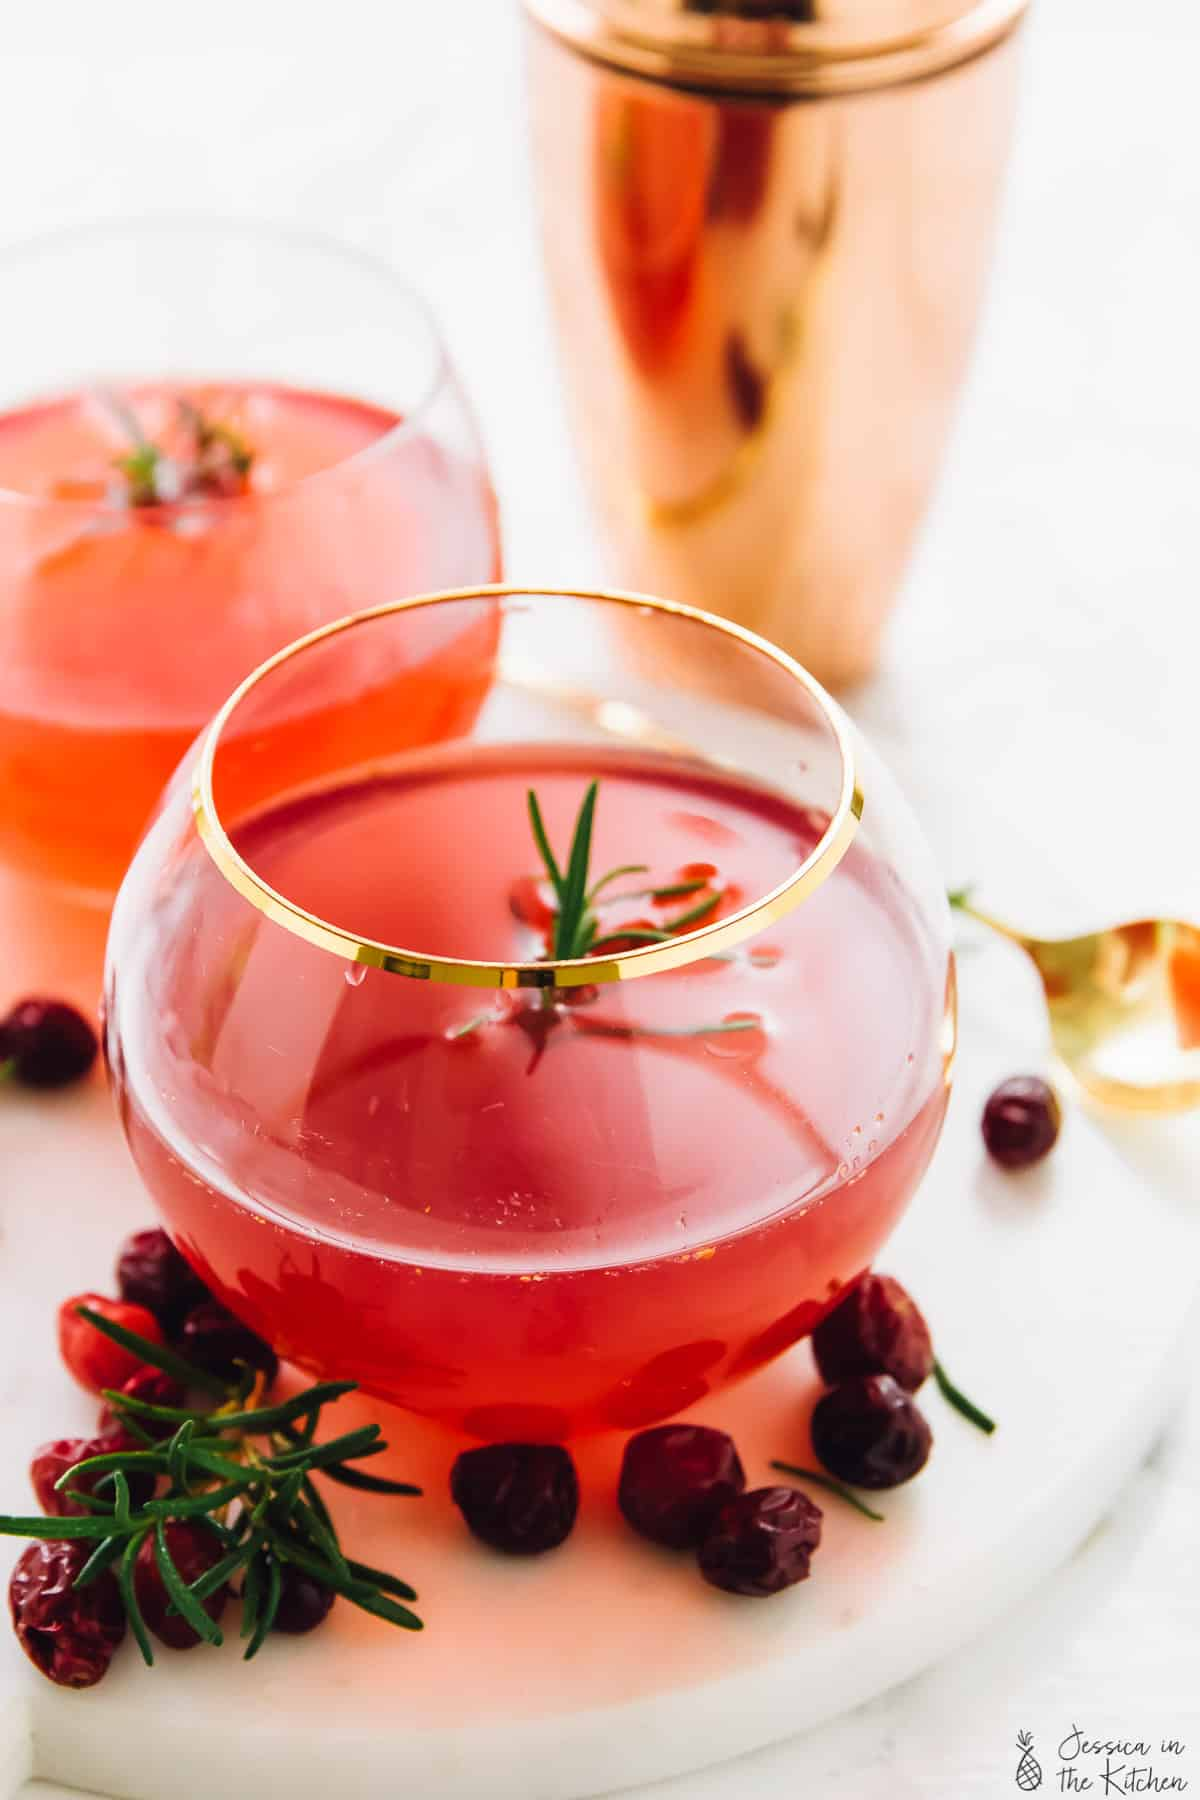 This Winter Cranberry Gin Cocktail will impress all of your guests! It's made with an easy rosemary infused simple syrup and only a few ingredients!